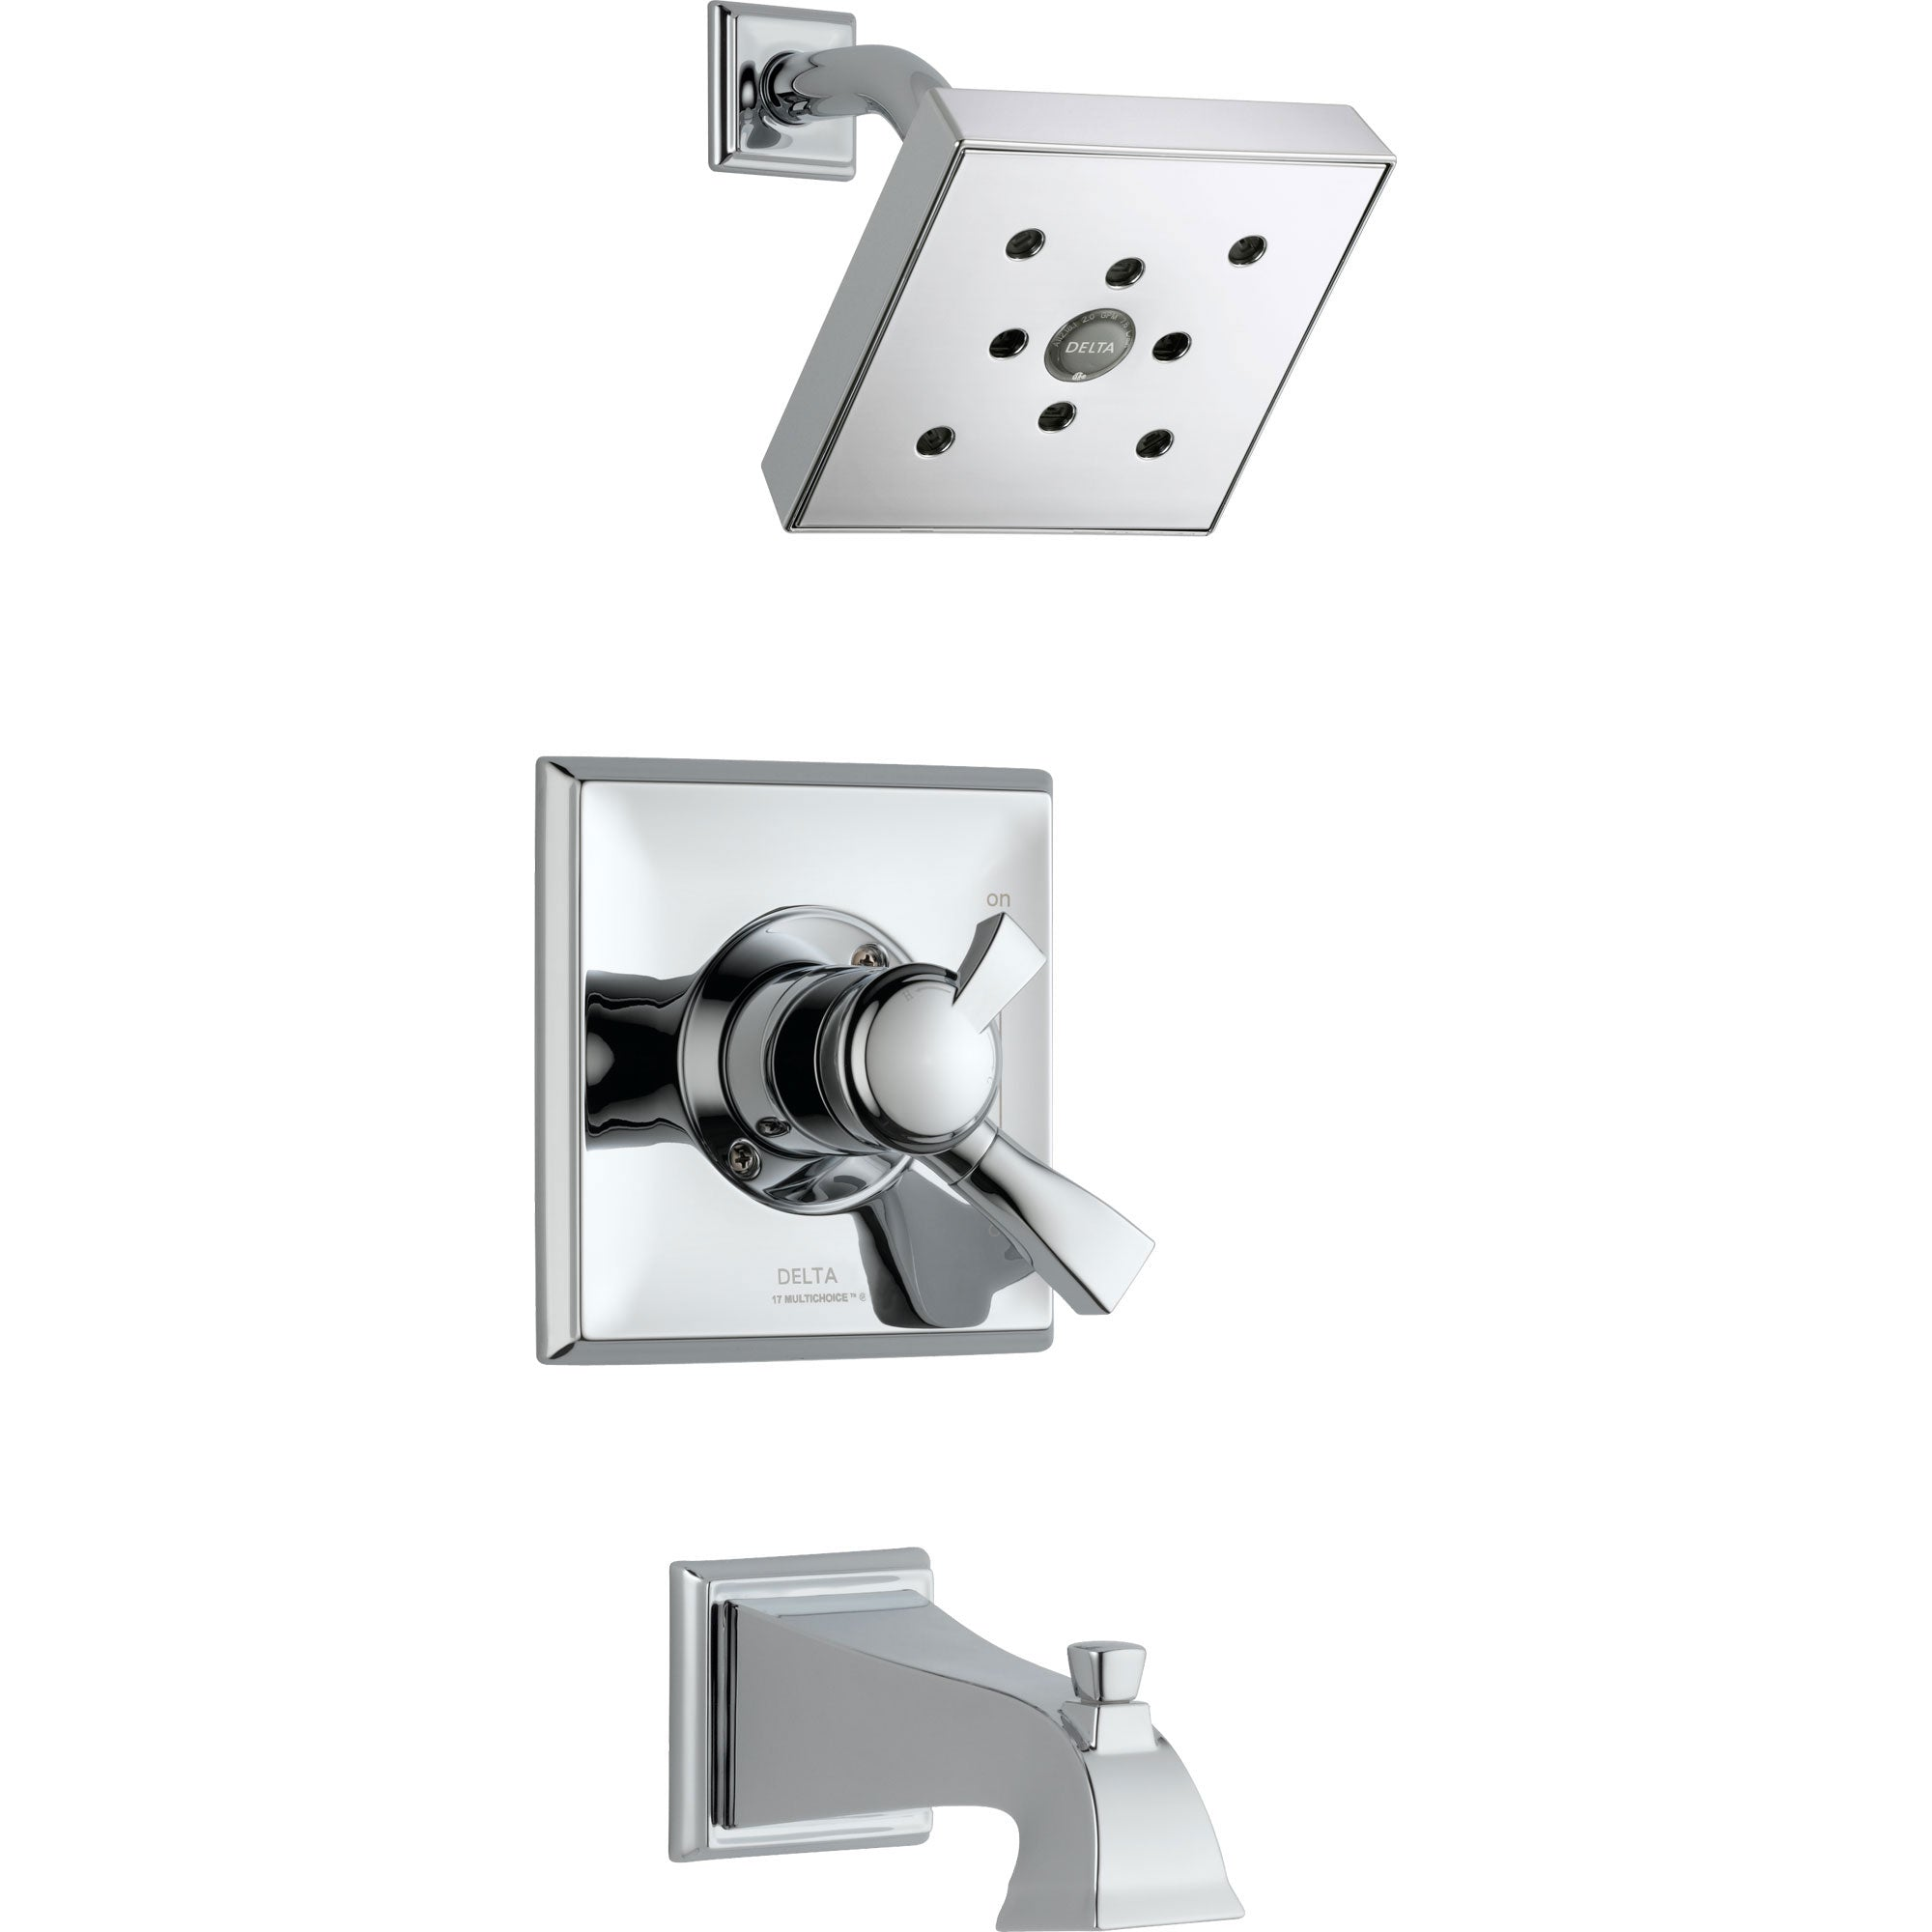 Delta Dryden Temp/Volume Dual Control Chrome Tub and Shower Faucet Trim 550103